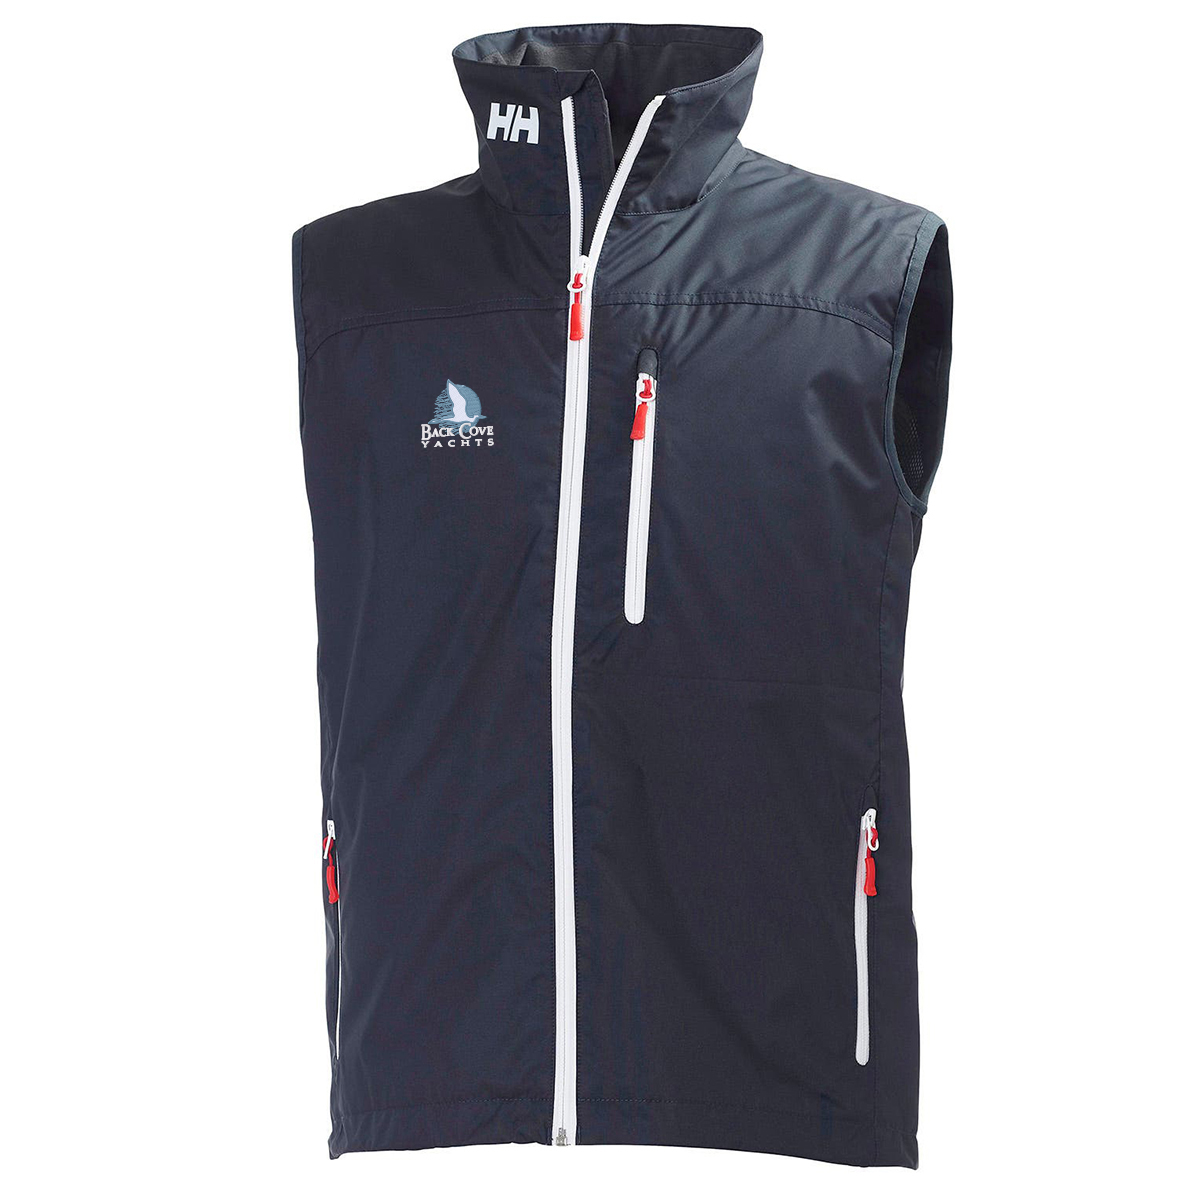 Back Cove Yachts - Helly Hansen Men's Crew Vest